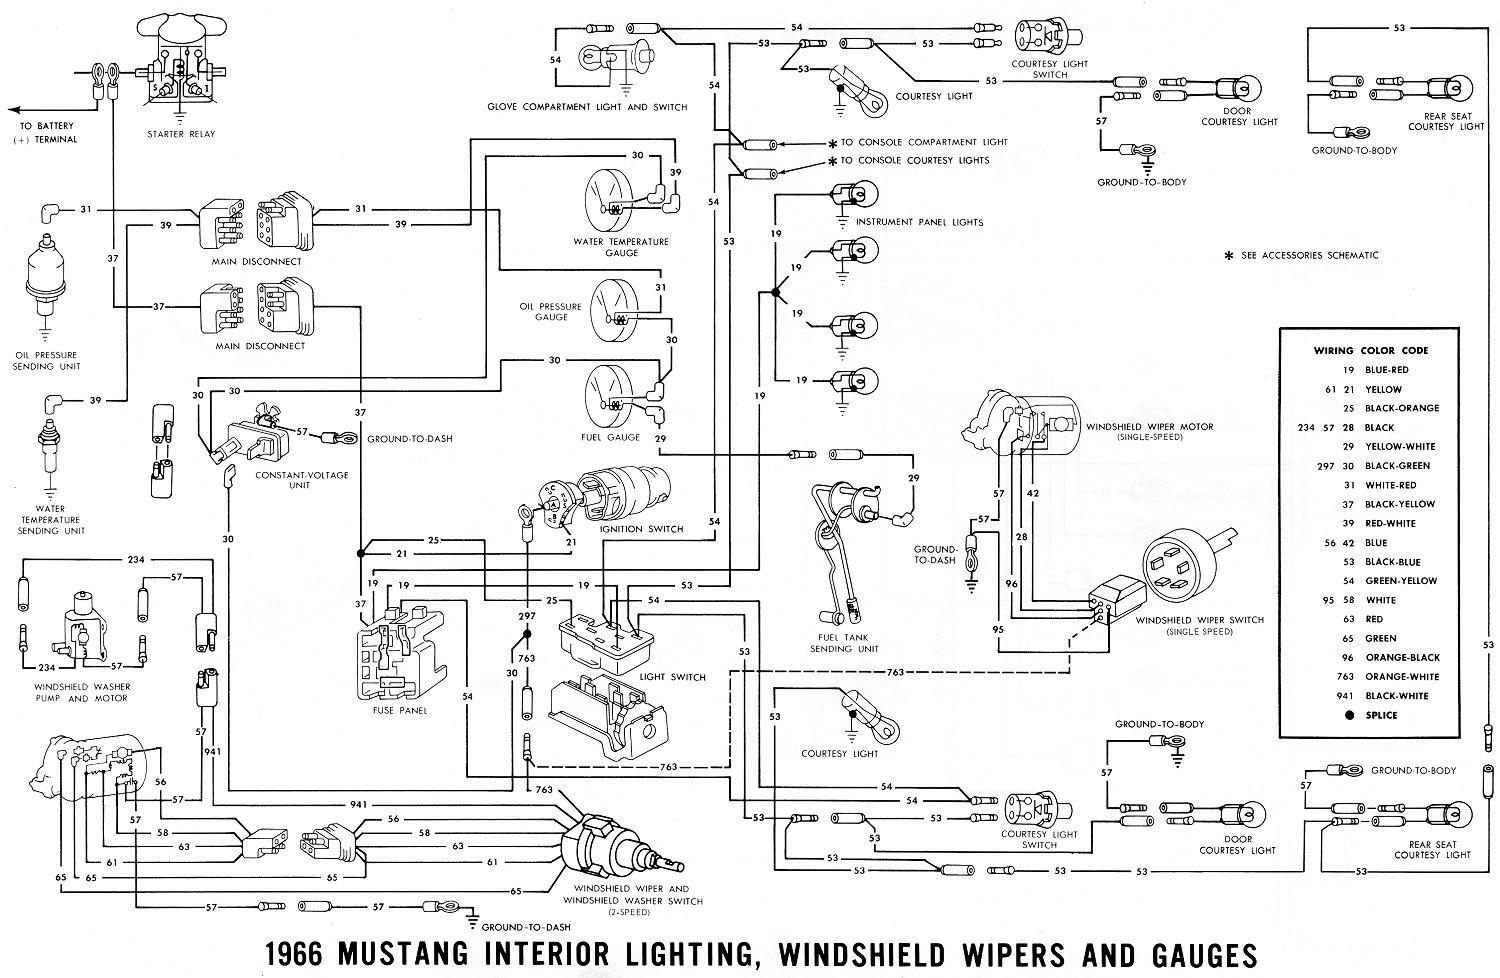 67 Mustang Interior Wiring Diagram Wiring Diagram View A View A Zaafran It